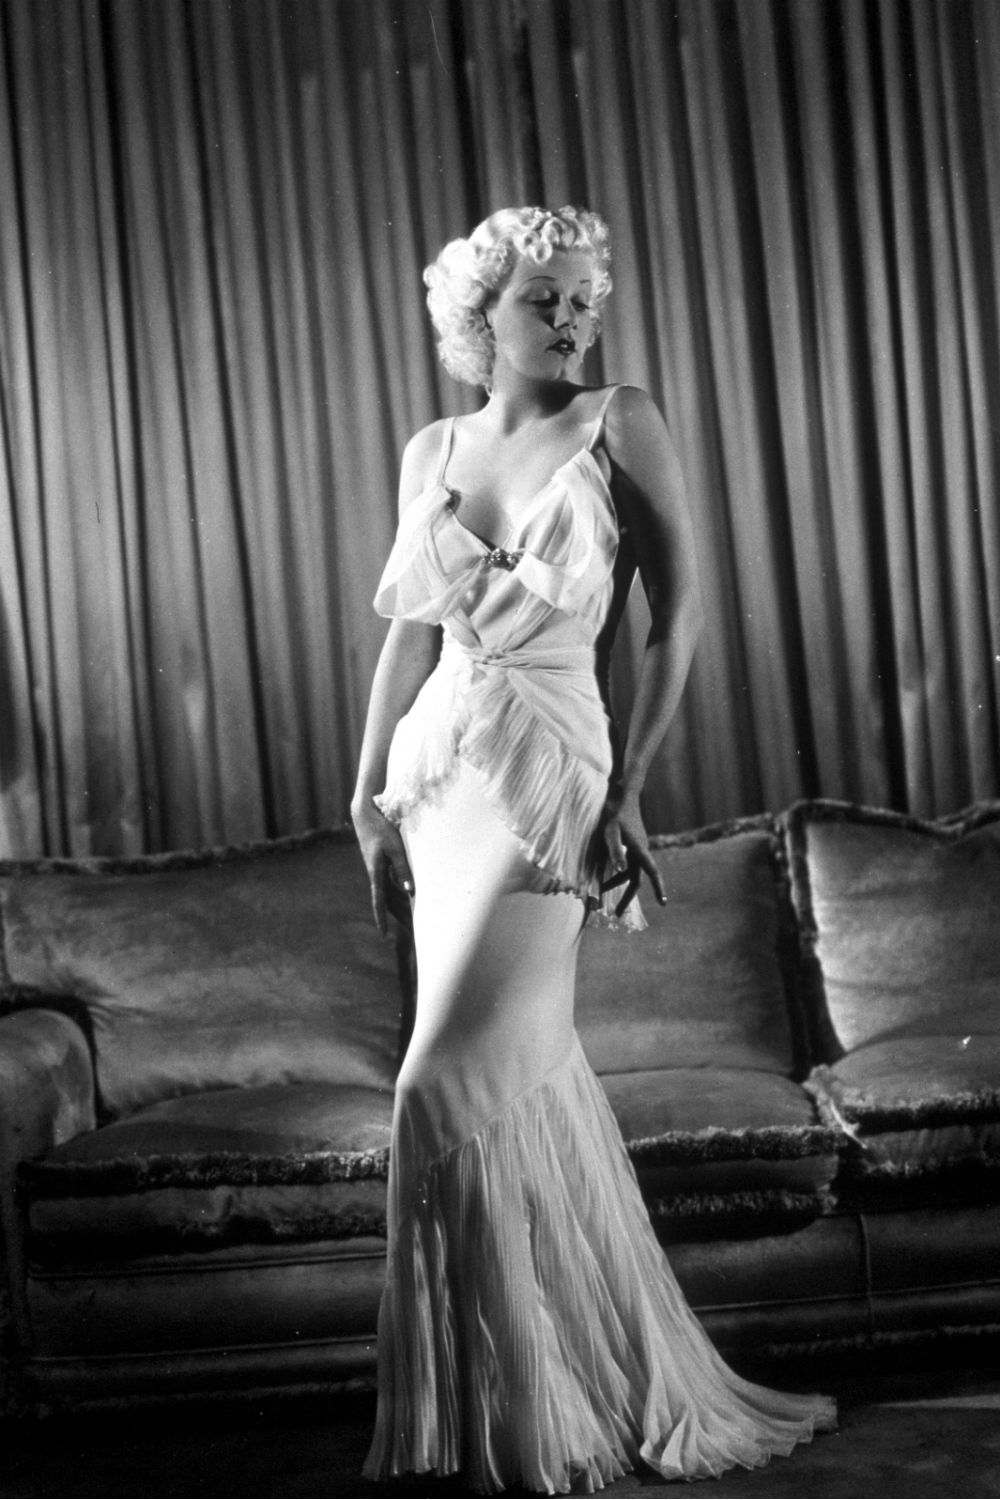 Jean Harlow 1930s fashion icons